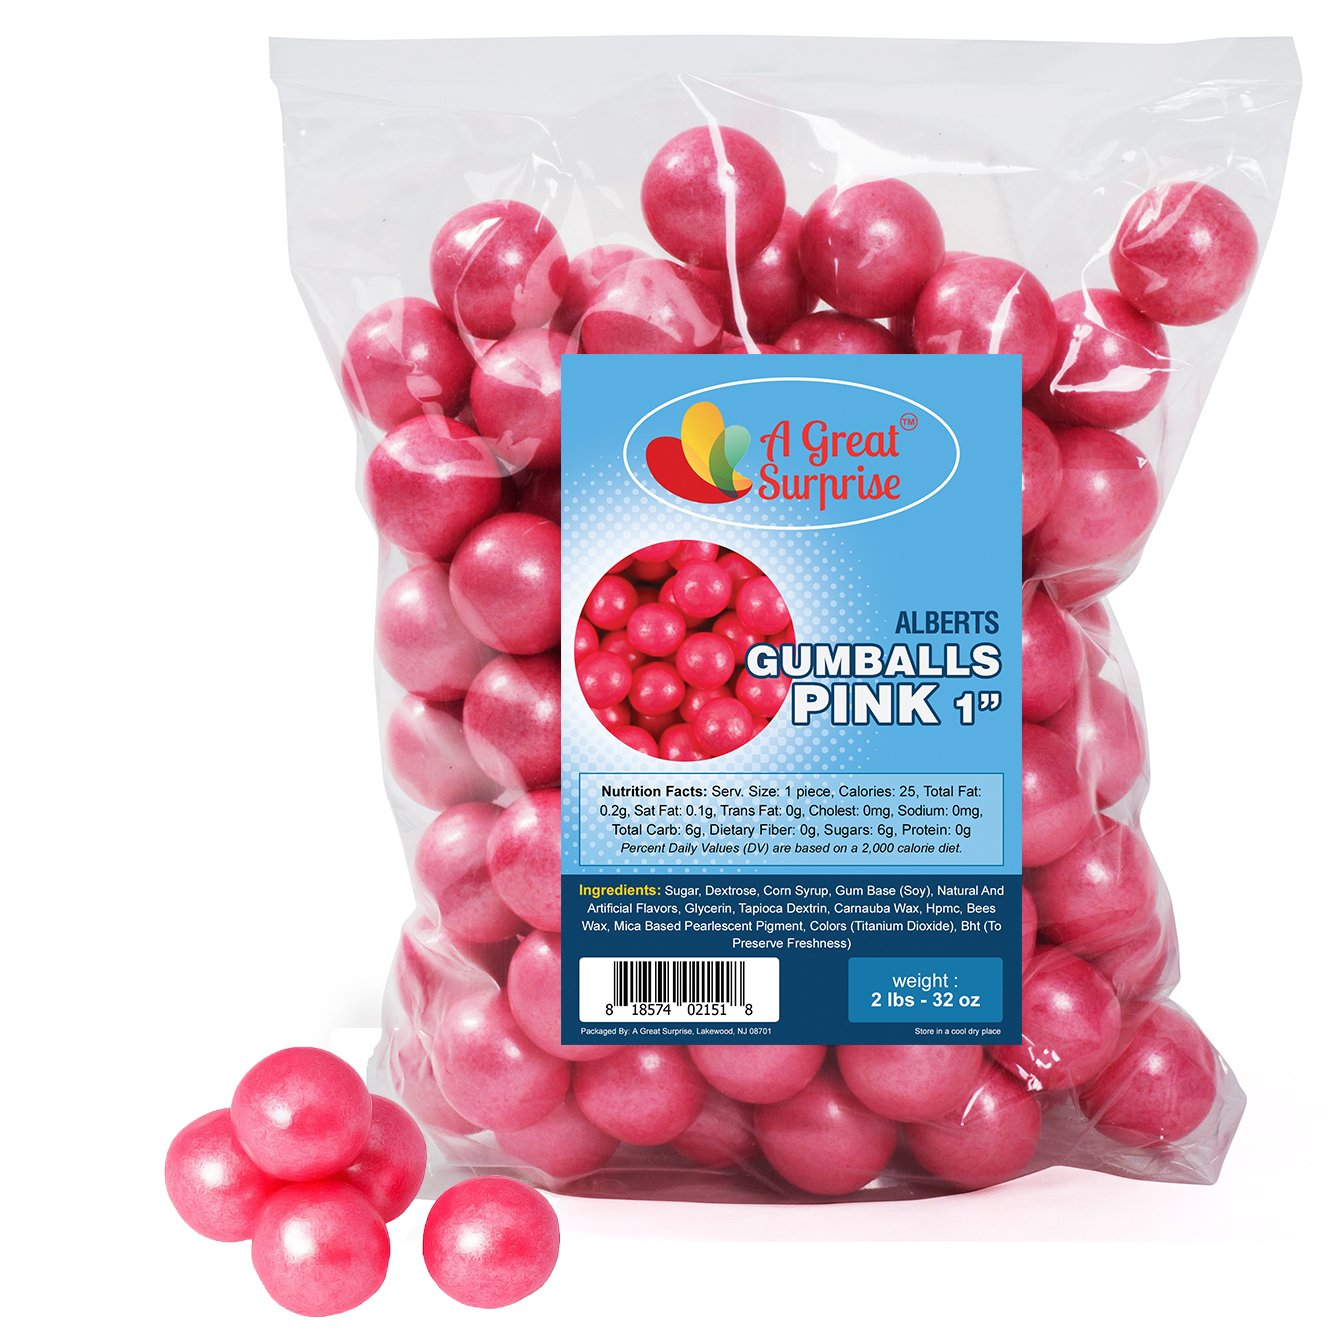 Swell Gumballs In Bulk Pink Gumballs For Candy Buffet Shimmer Gumballs 1 Inch Bulk Candy 2 Lb Download Free Architecture Designs Embacsunscenecom